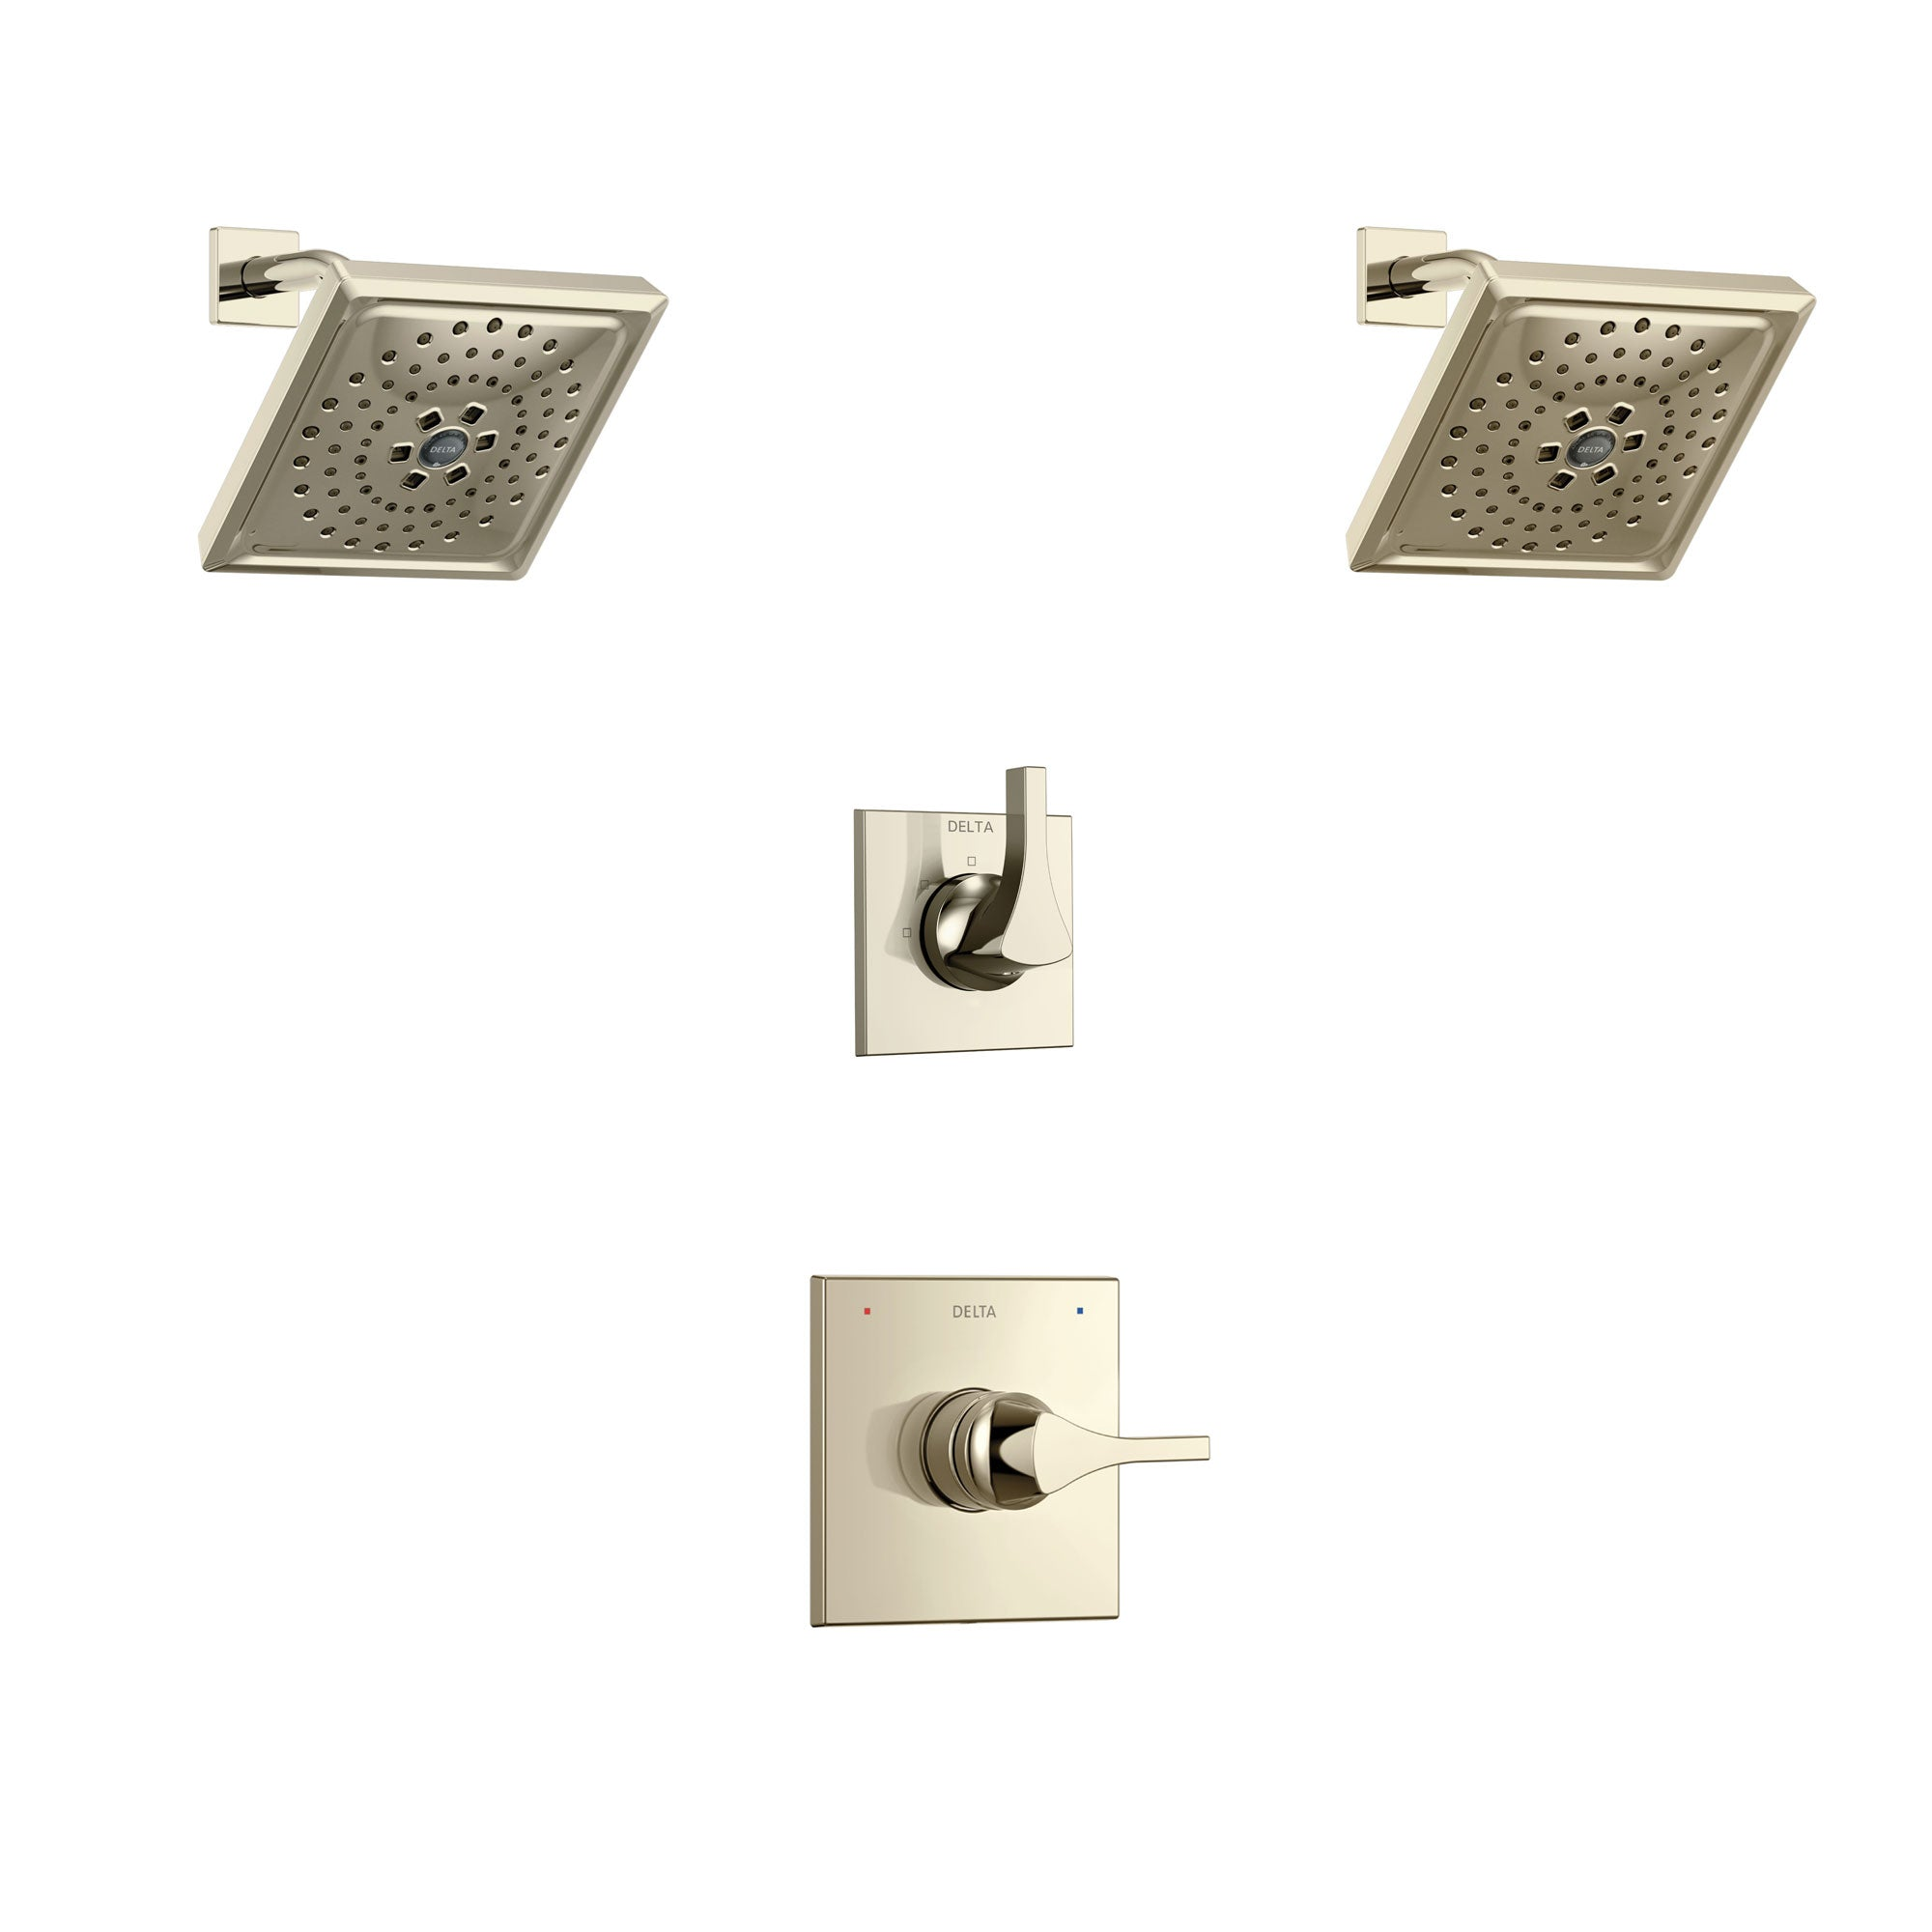 Delta Zura Polished Nickel Finish Shower System with Control Handle, 3-Setting Diverter, 2 Showerheads SS14274PN4